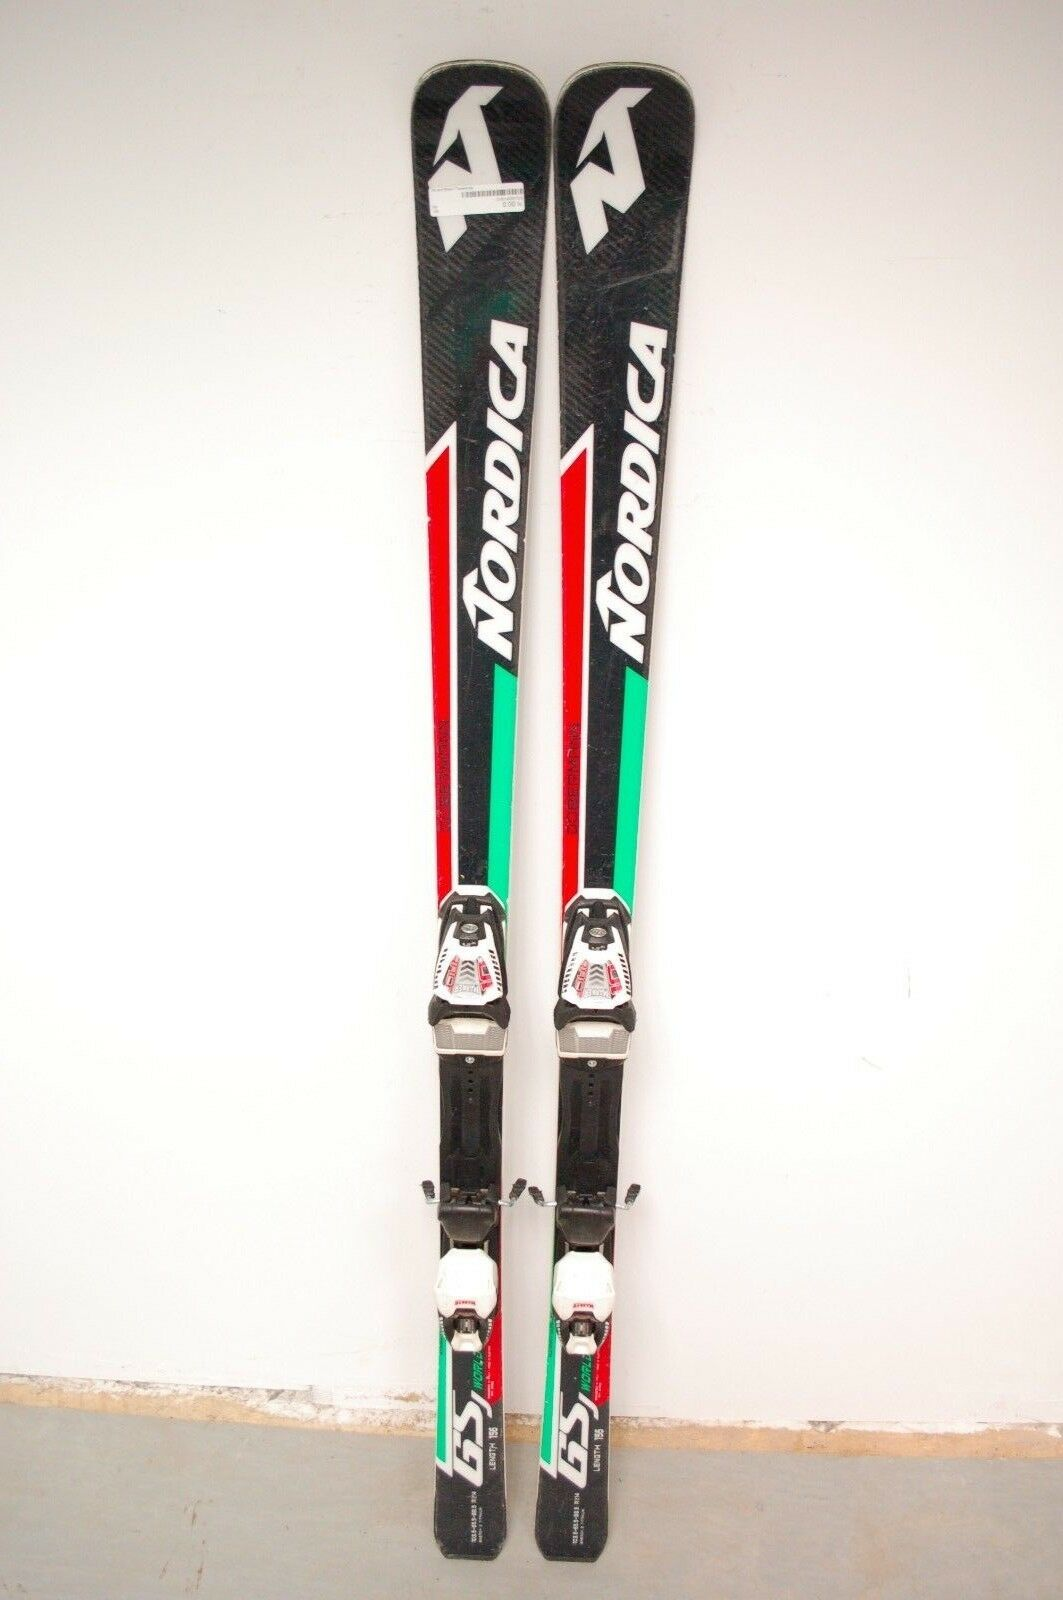 Nordica Dobermann GS World Cup 156 cm Ski + Marker Race 10 Bindings